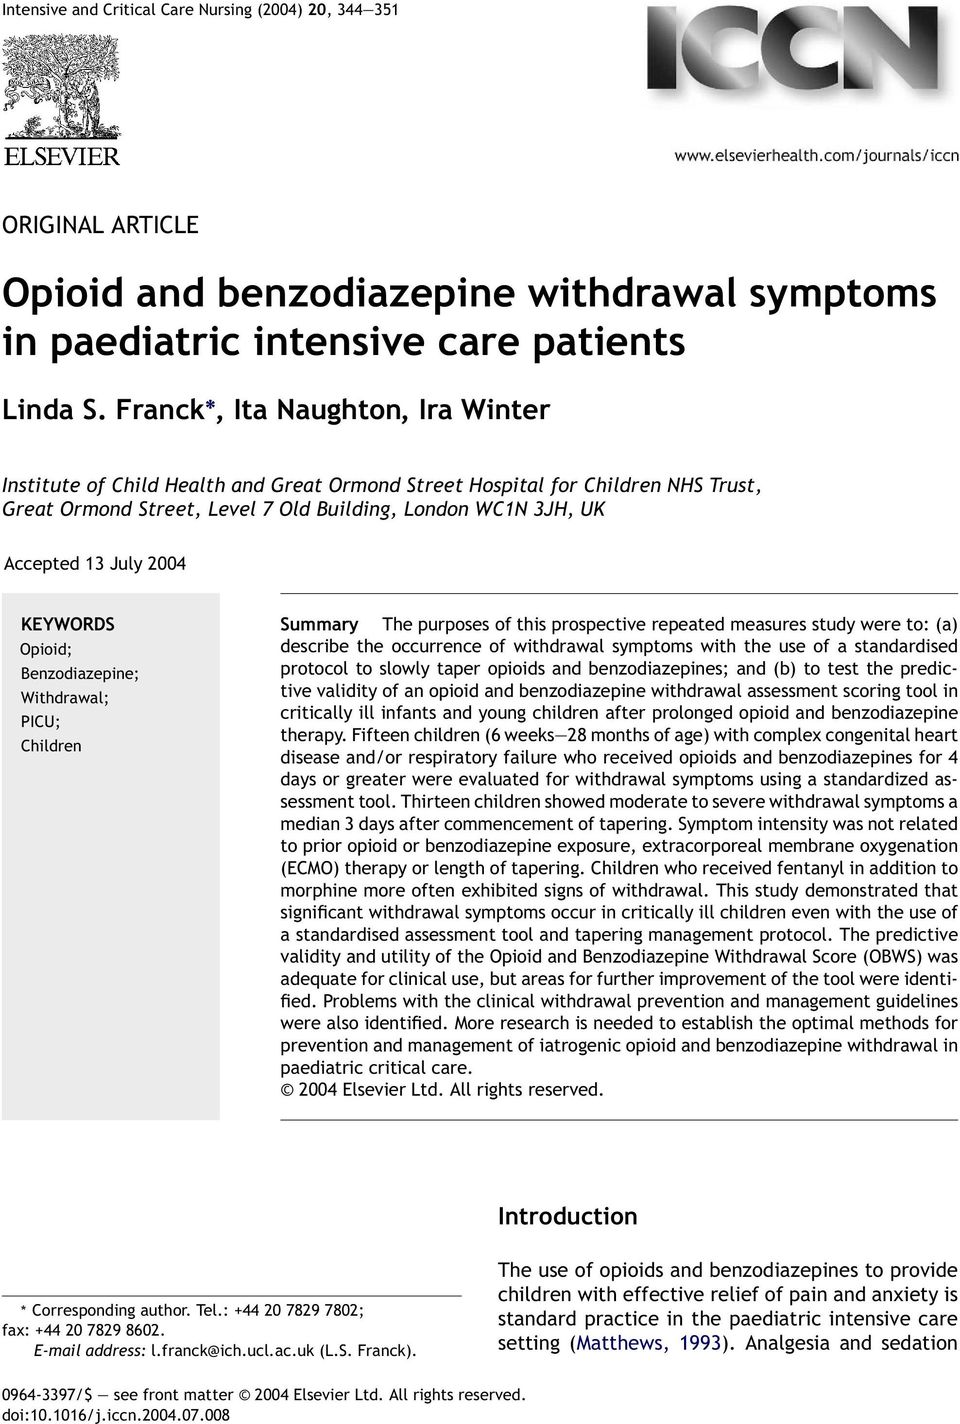 Opioid and benzodiazepine withdrawal symptoms in paediatric